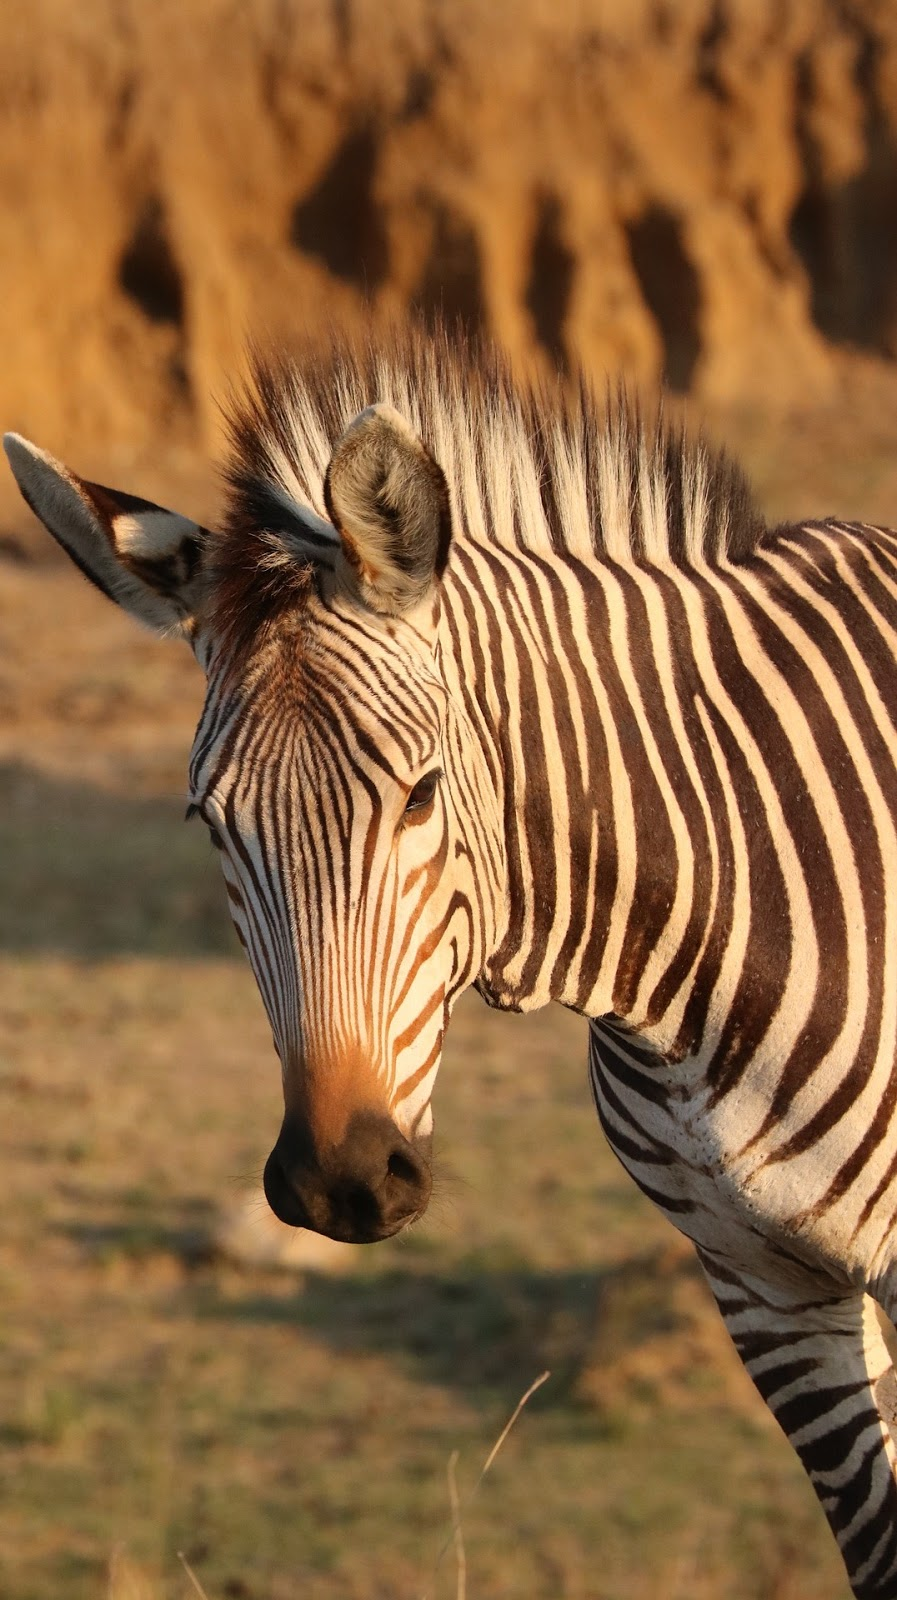 Portrait picture of a zebra.